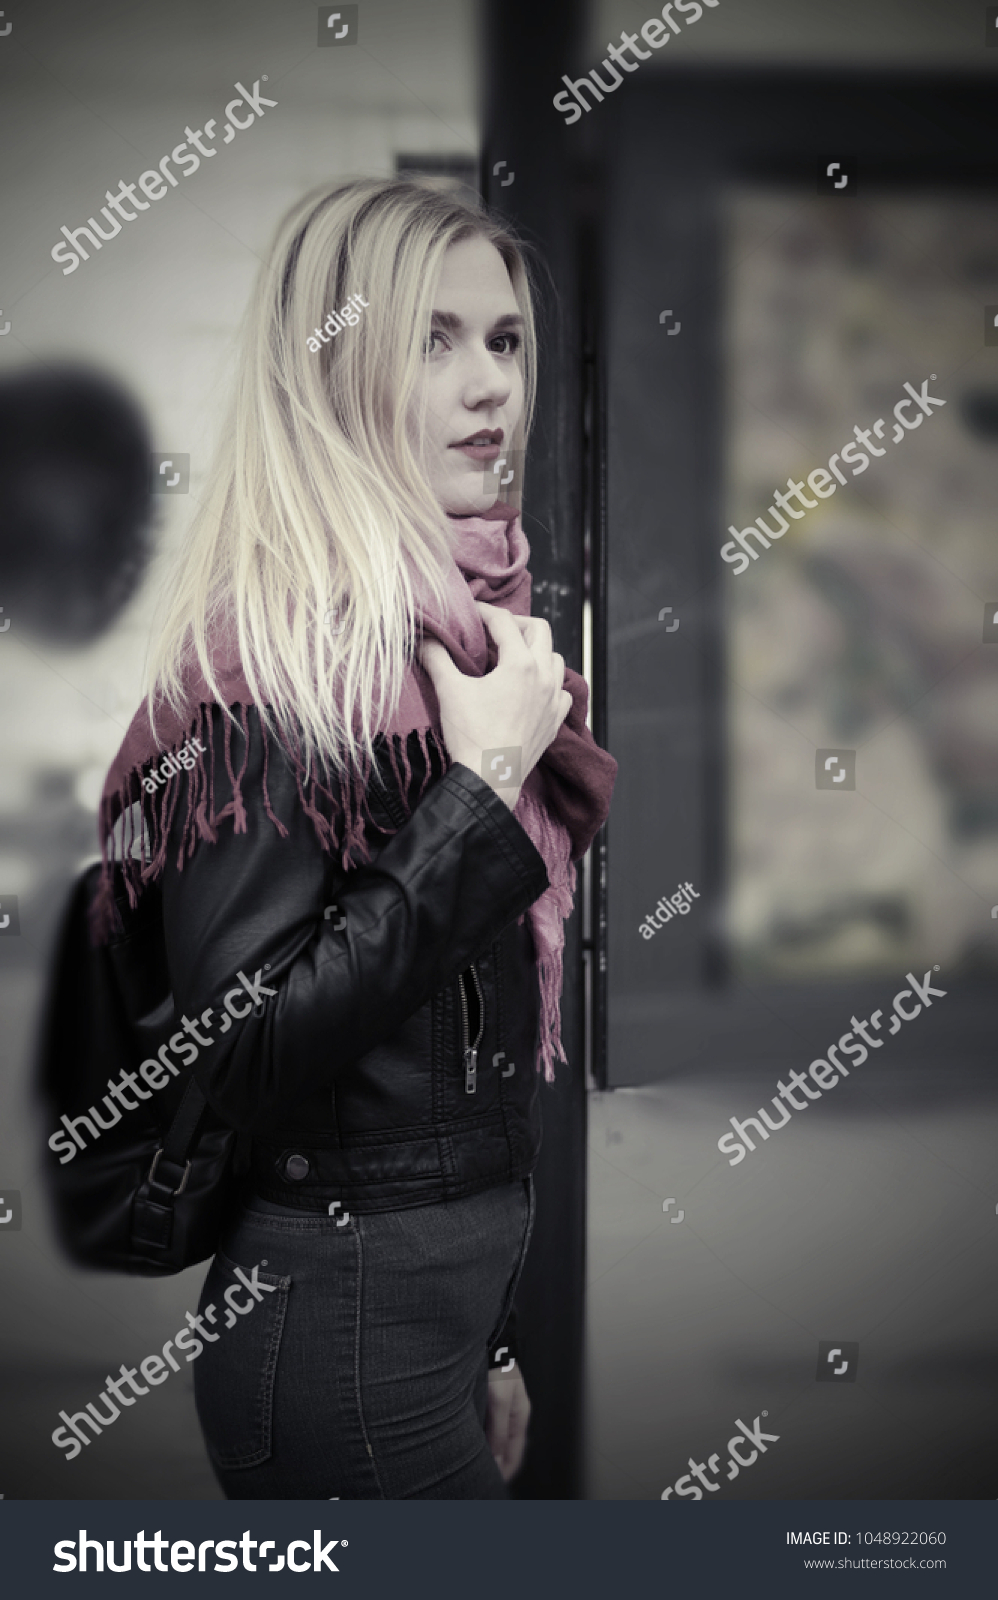 A beautiful blonde girl is standing at a public transport stop. The girl